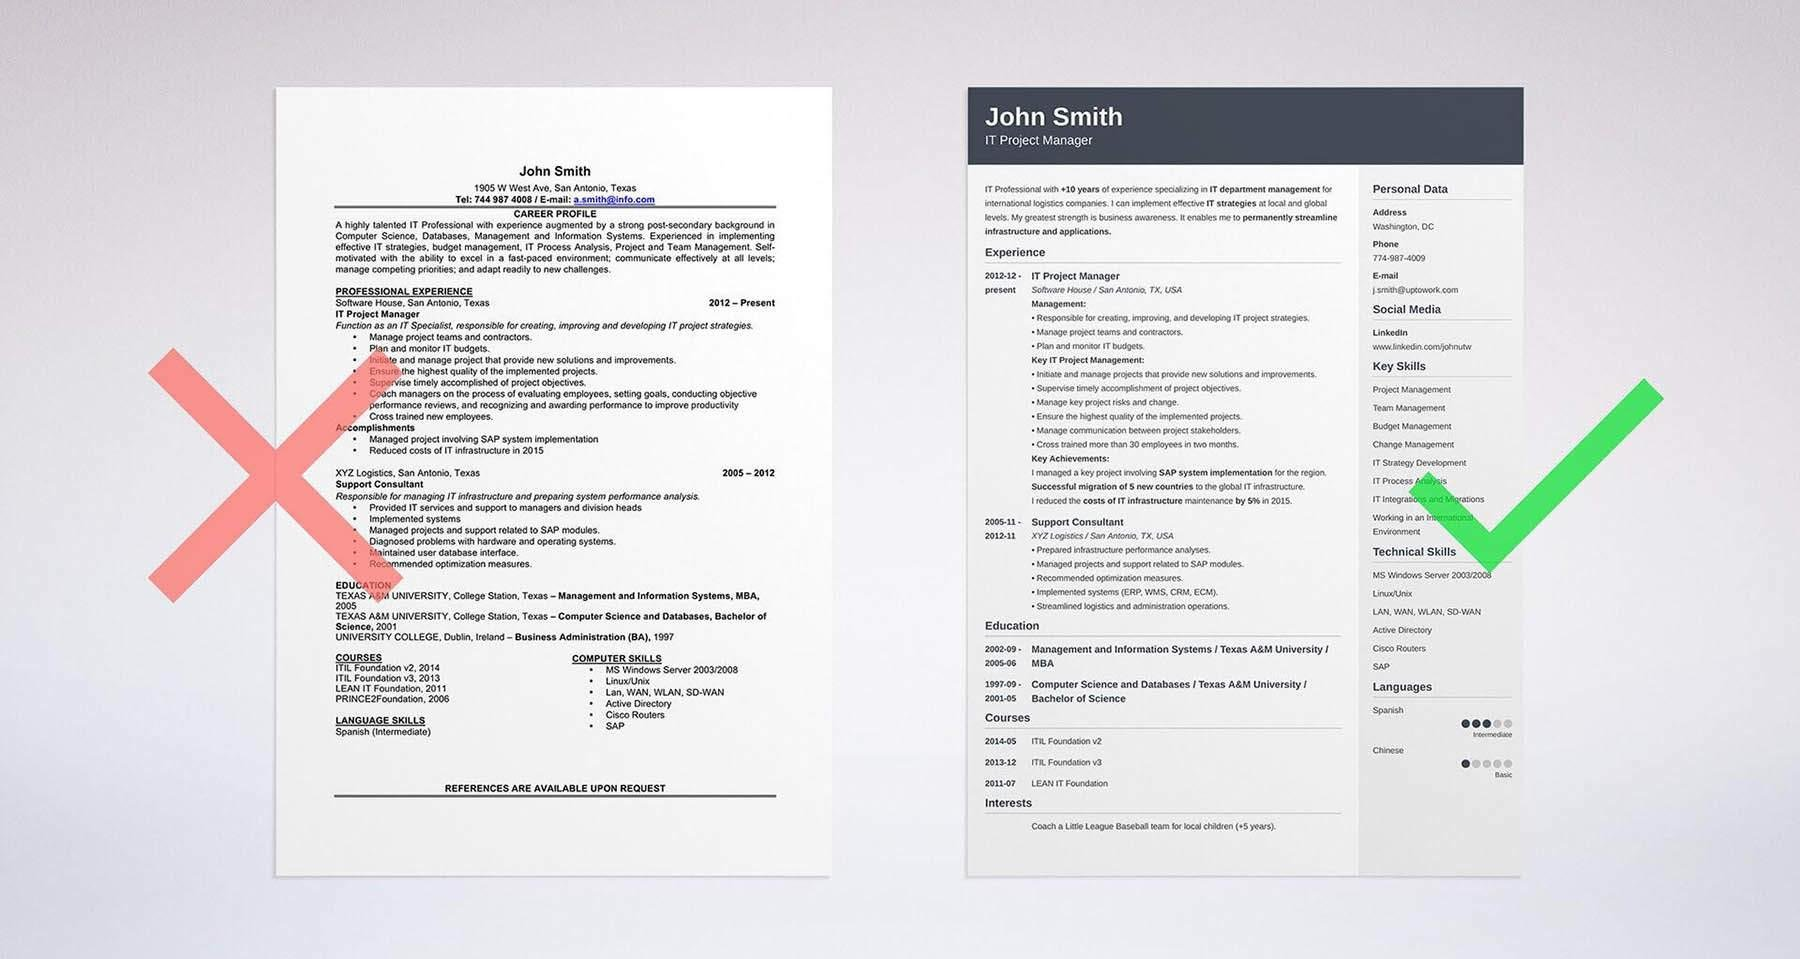 20 resume objective examples use them on your resume tips sample resume with a resume objective made with our resume builder see 20 templates and create your resume here altavistaventures Choice Image